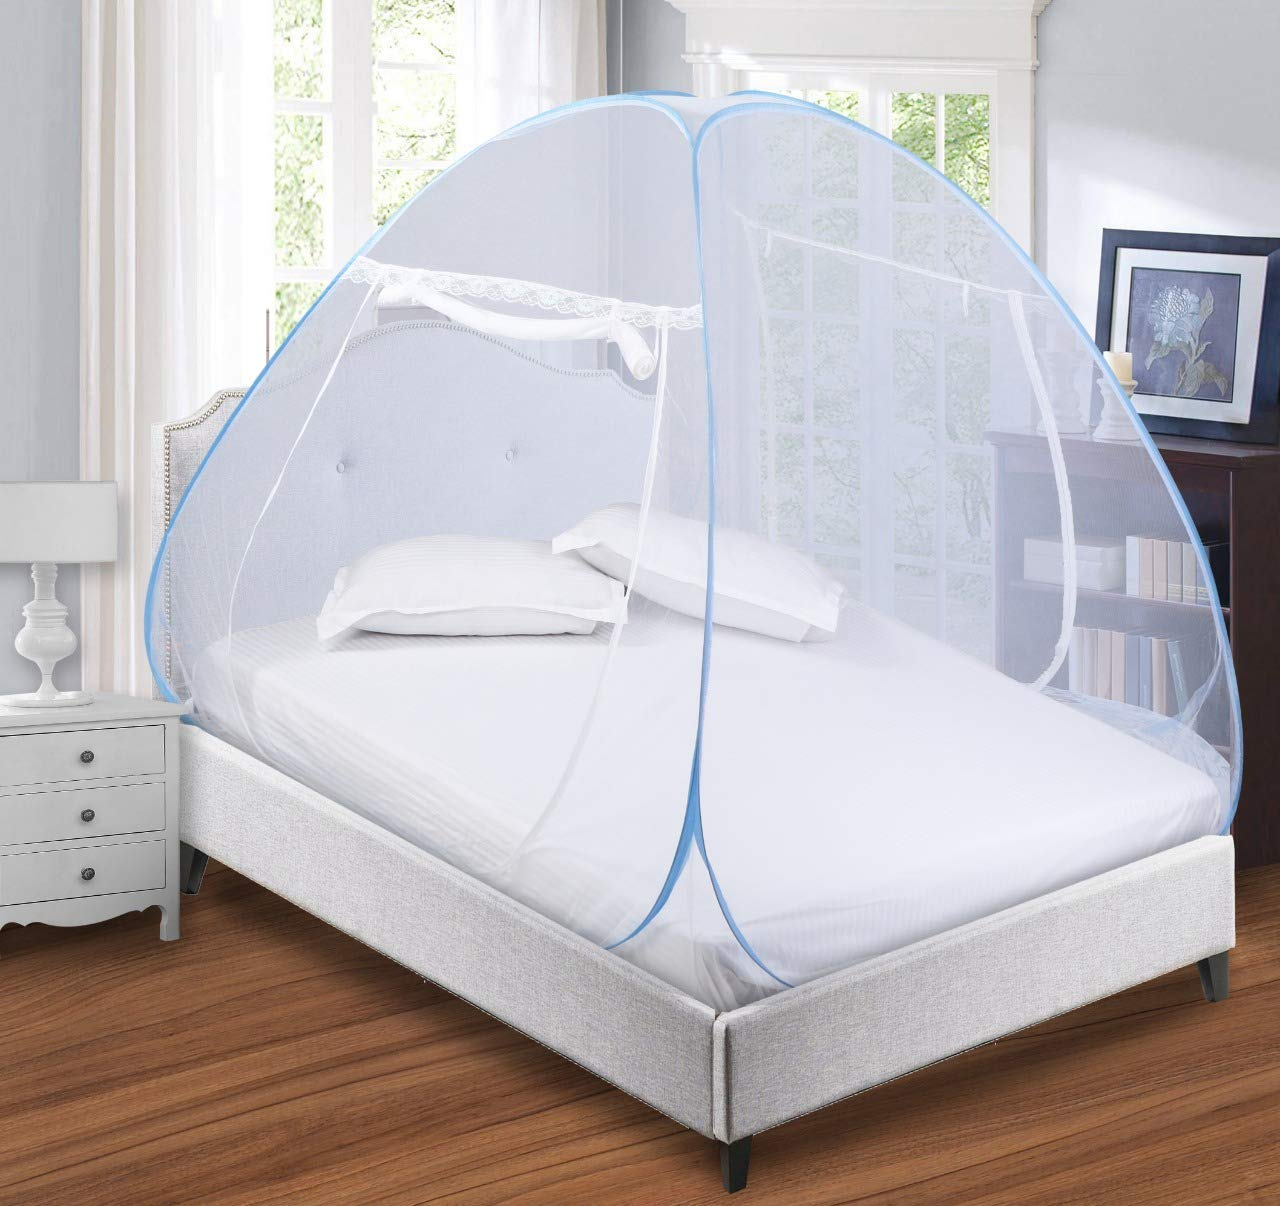 Royal Foldable Single Bed Mosquito Net